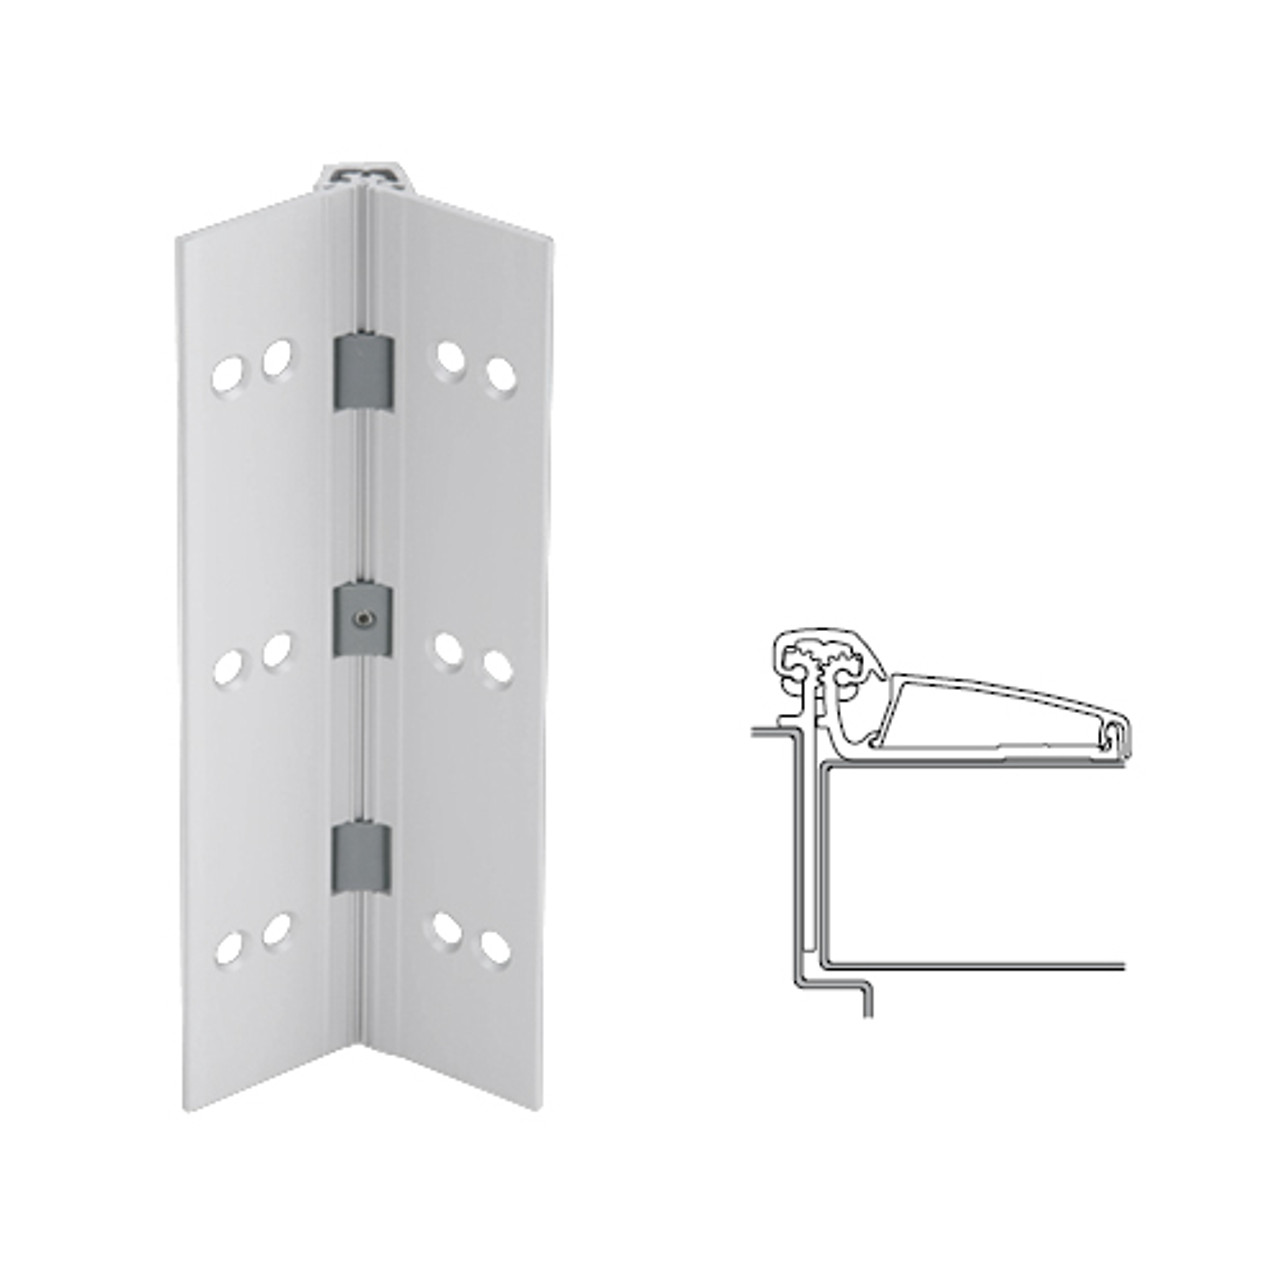 046XY-US28-85-SECHM IVES Adjustable Half Surface Continuous Geared Hinges with Security Screws - Hex Pin Drive in Satin Aluminum